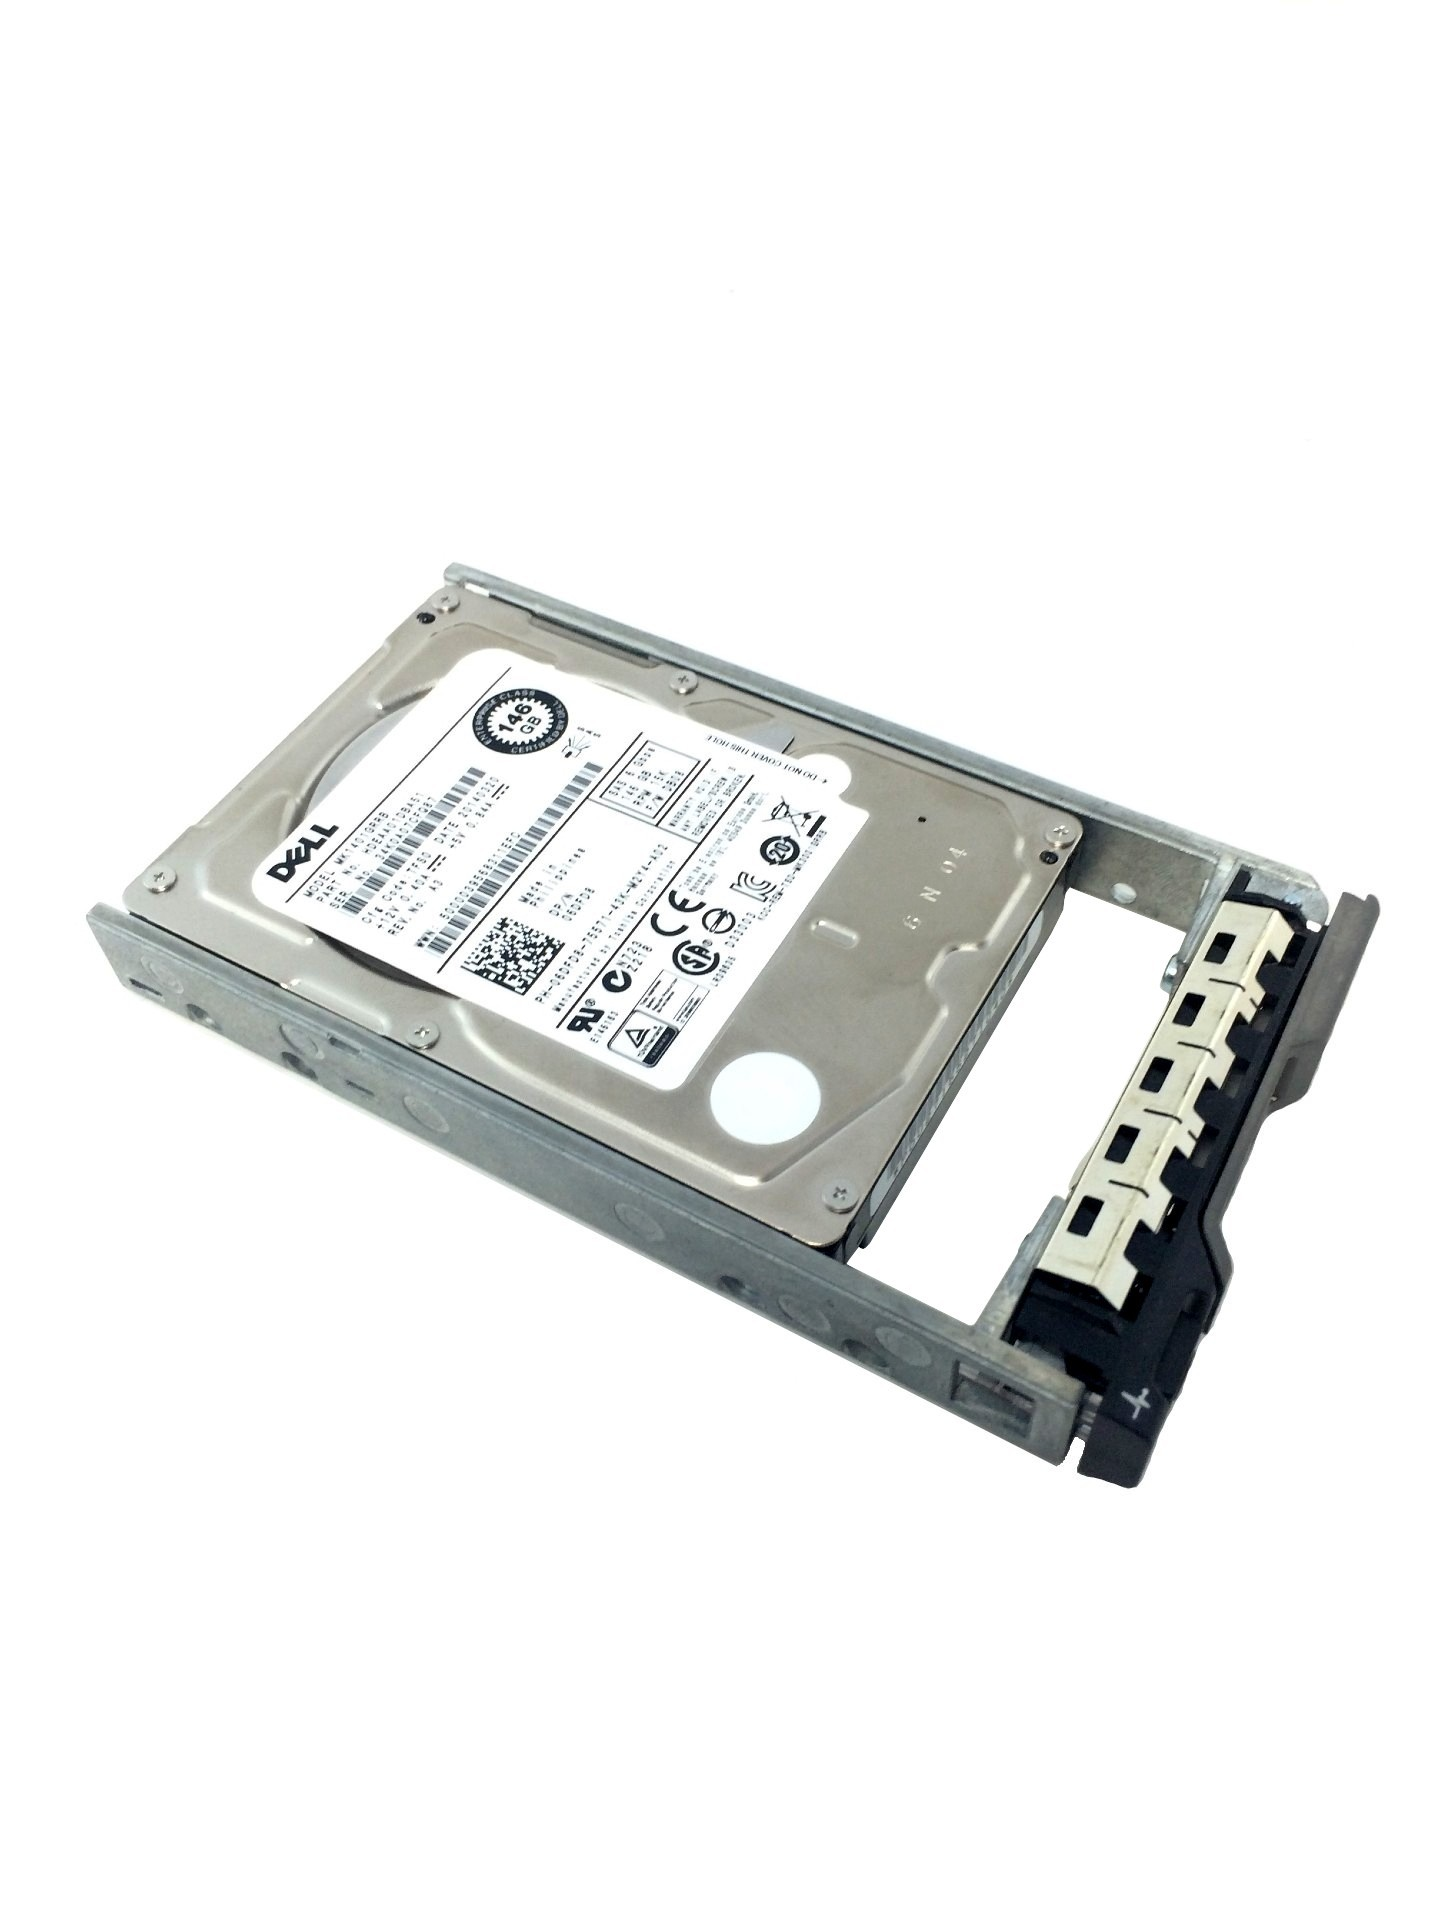 Dell 146GB 15K 6Gb/s SAS 2.5'' HDD Hard Drive (6DFD8)